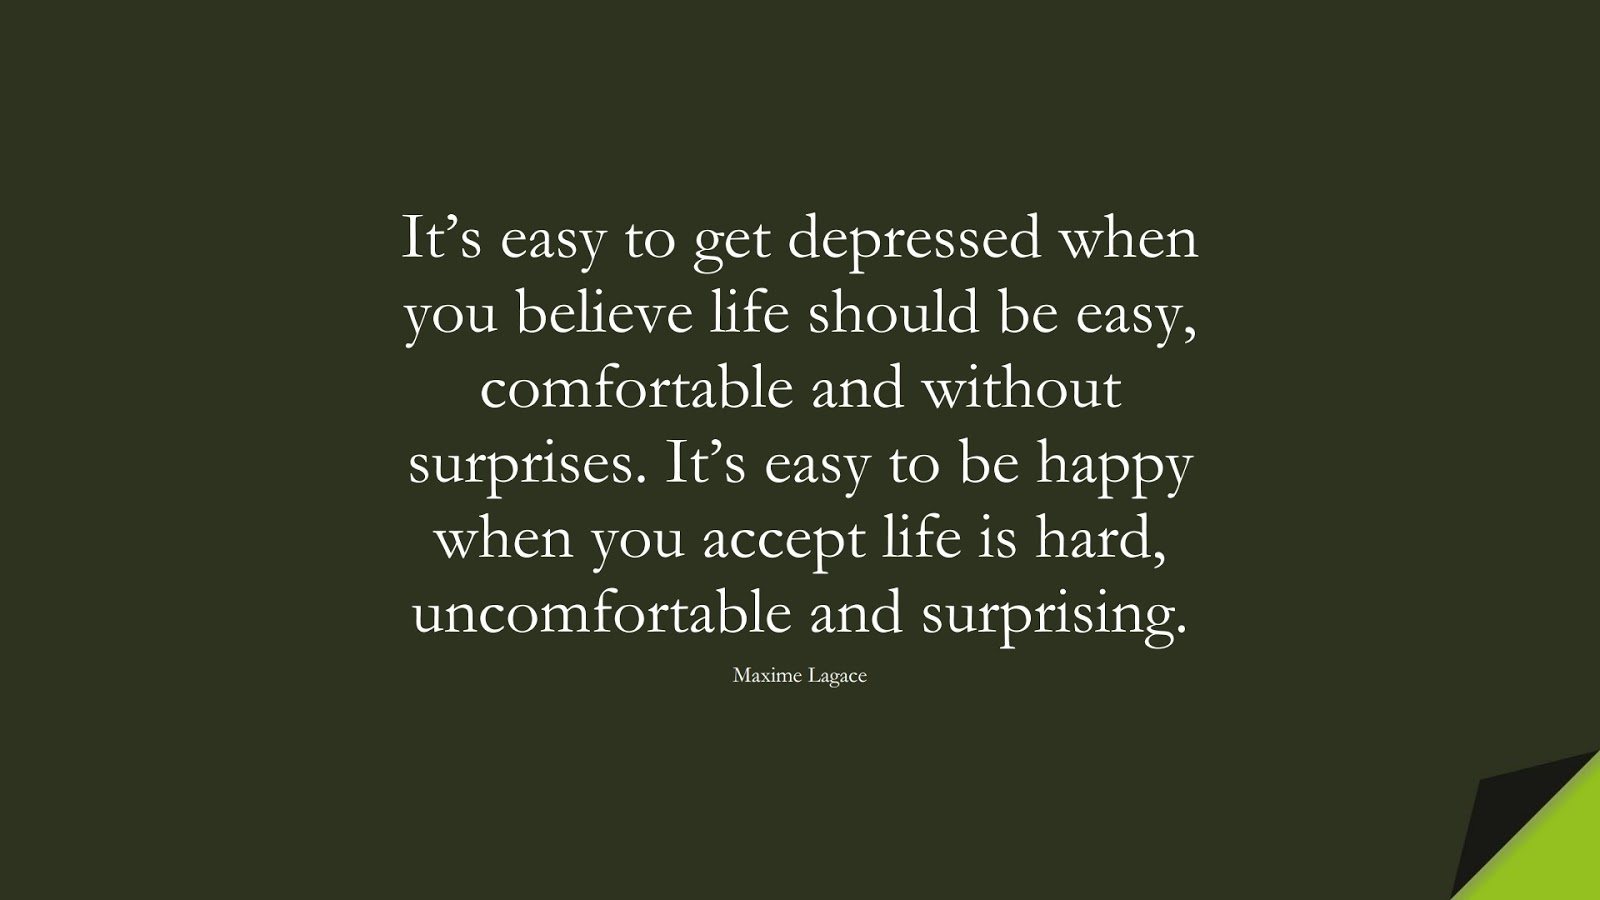 It's easy to get depressed when you believe life should be easy, comfortable and without surprises. It's easy to be happy when you accept life is hard, uncomfortable and surprising. (Maxime Lagace);  #DepressionQuotes